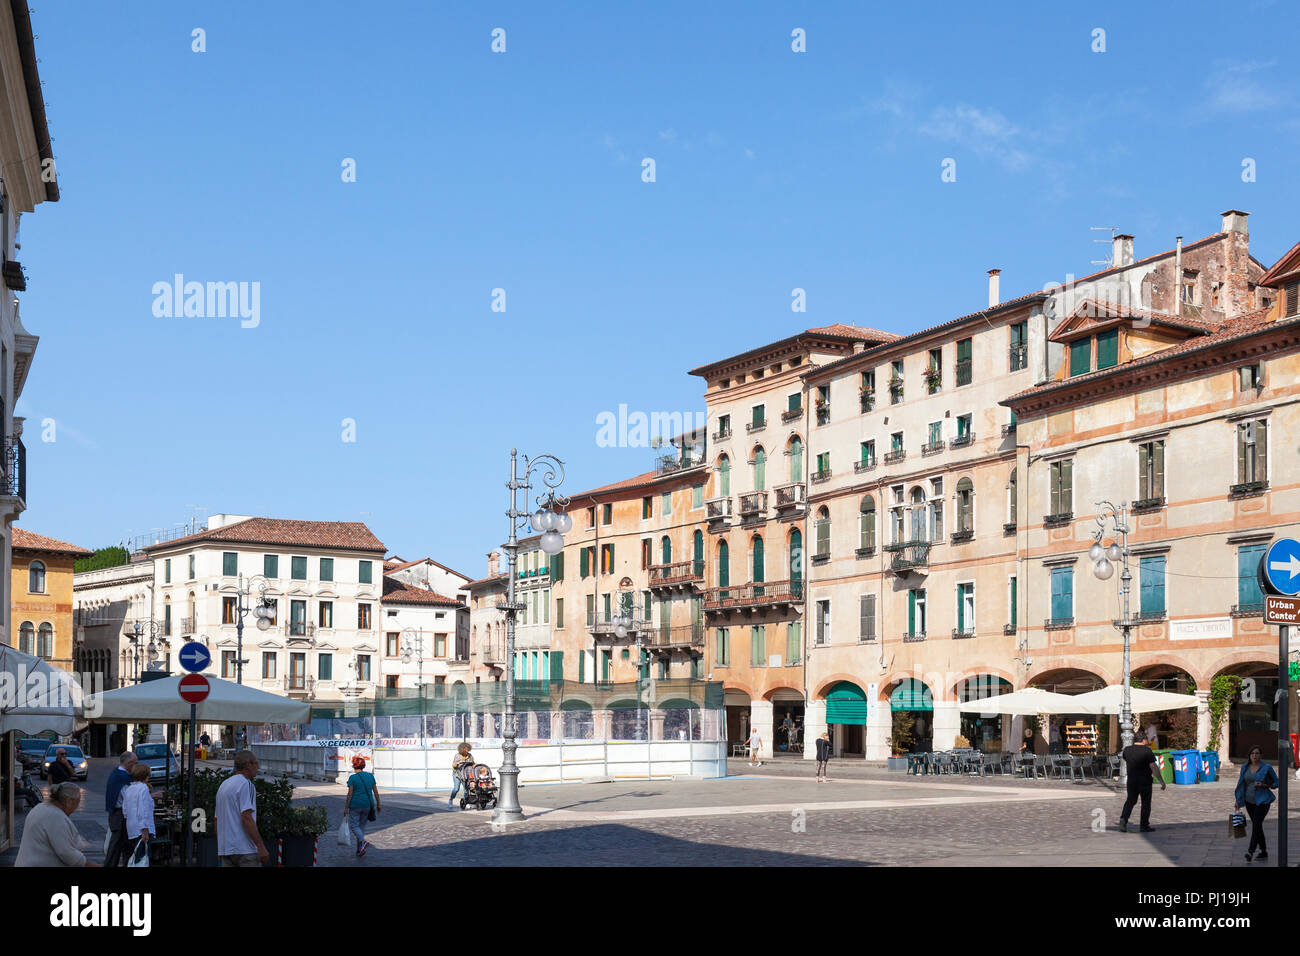 Piazza Liberta, Bassano del Grappa, Vicenza, Italy early morning. Locals going about daily life. Historic architecture. Roller skating rink for school - Stock Image